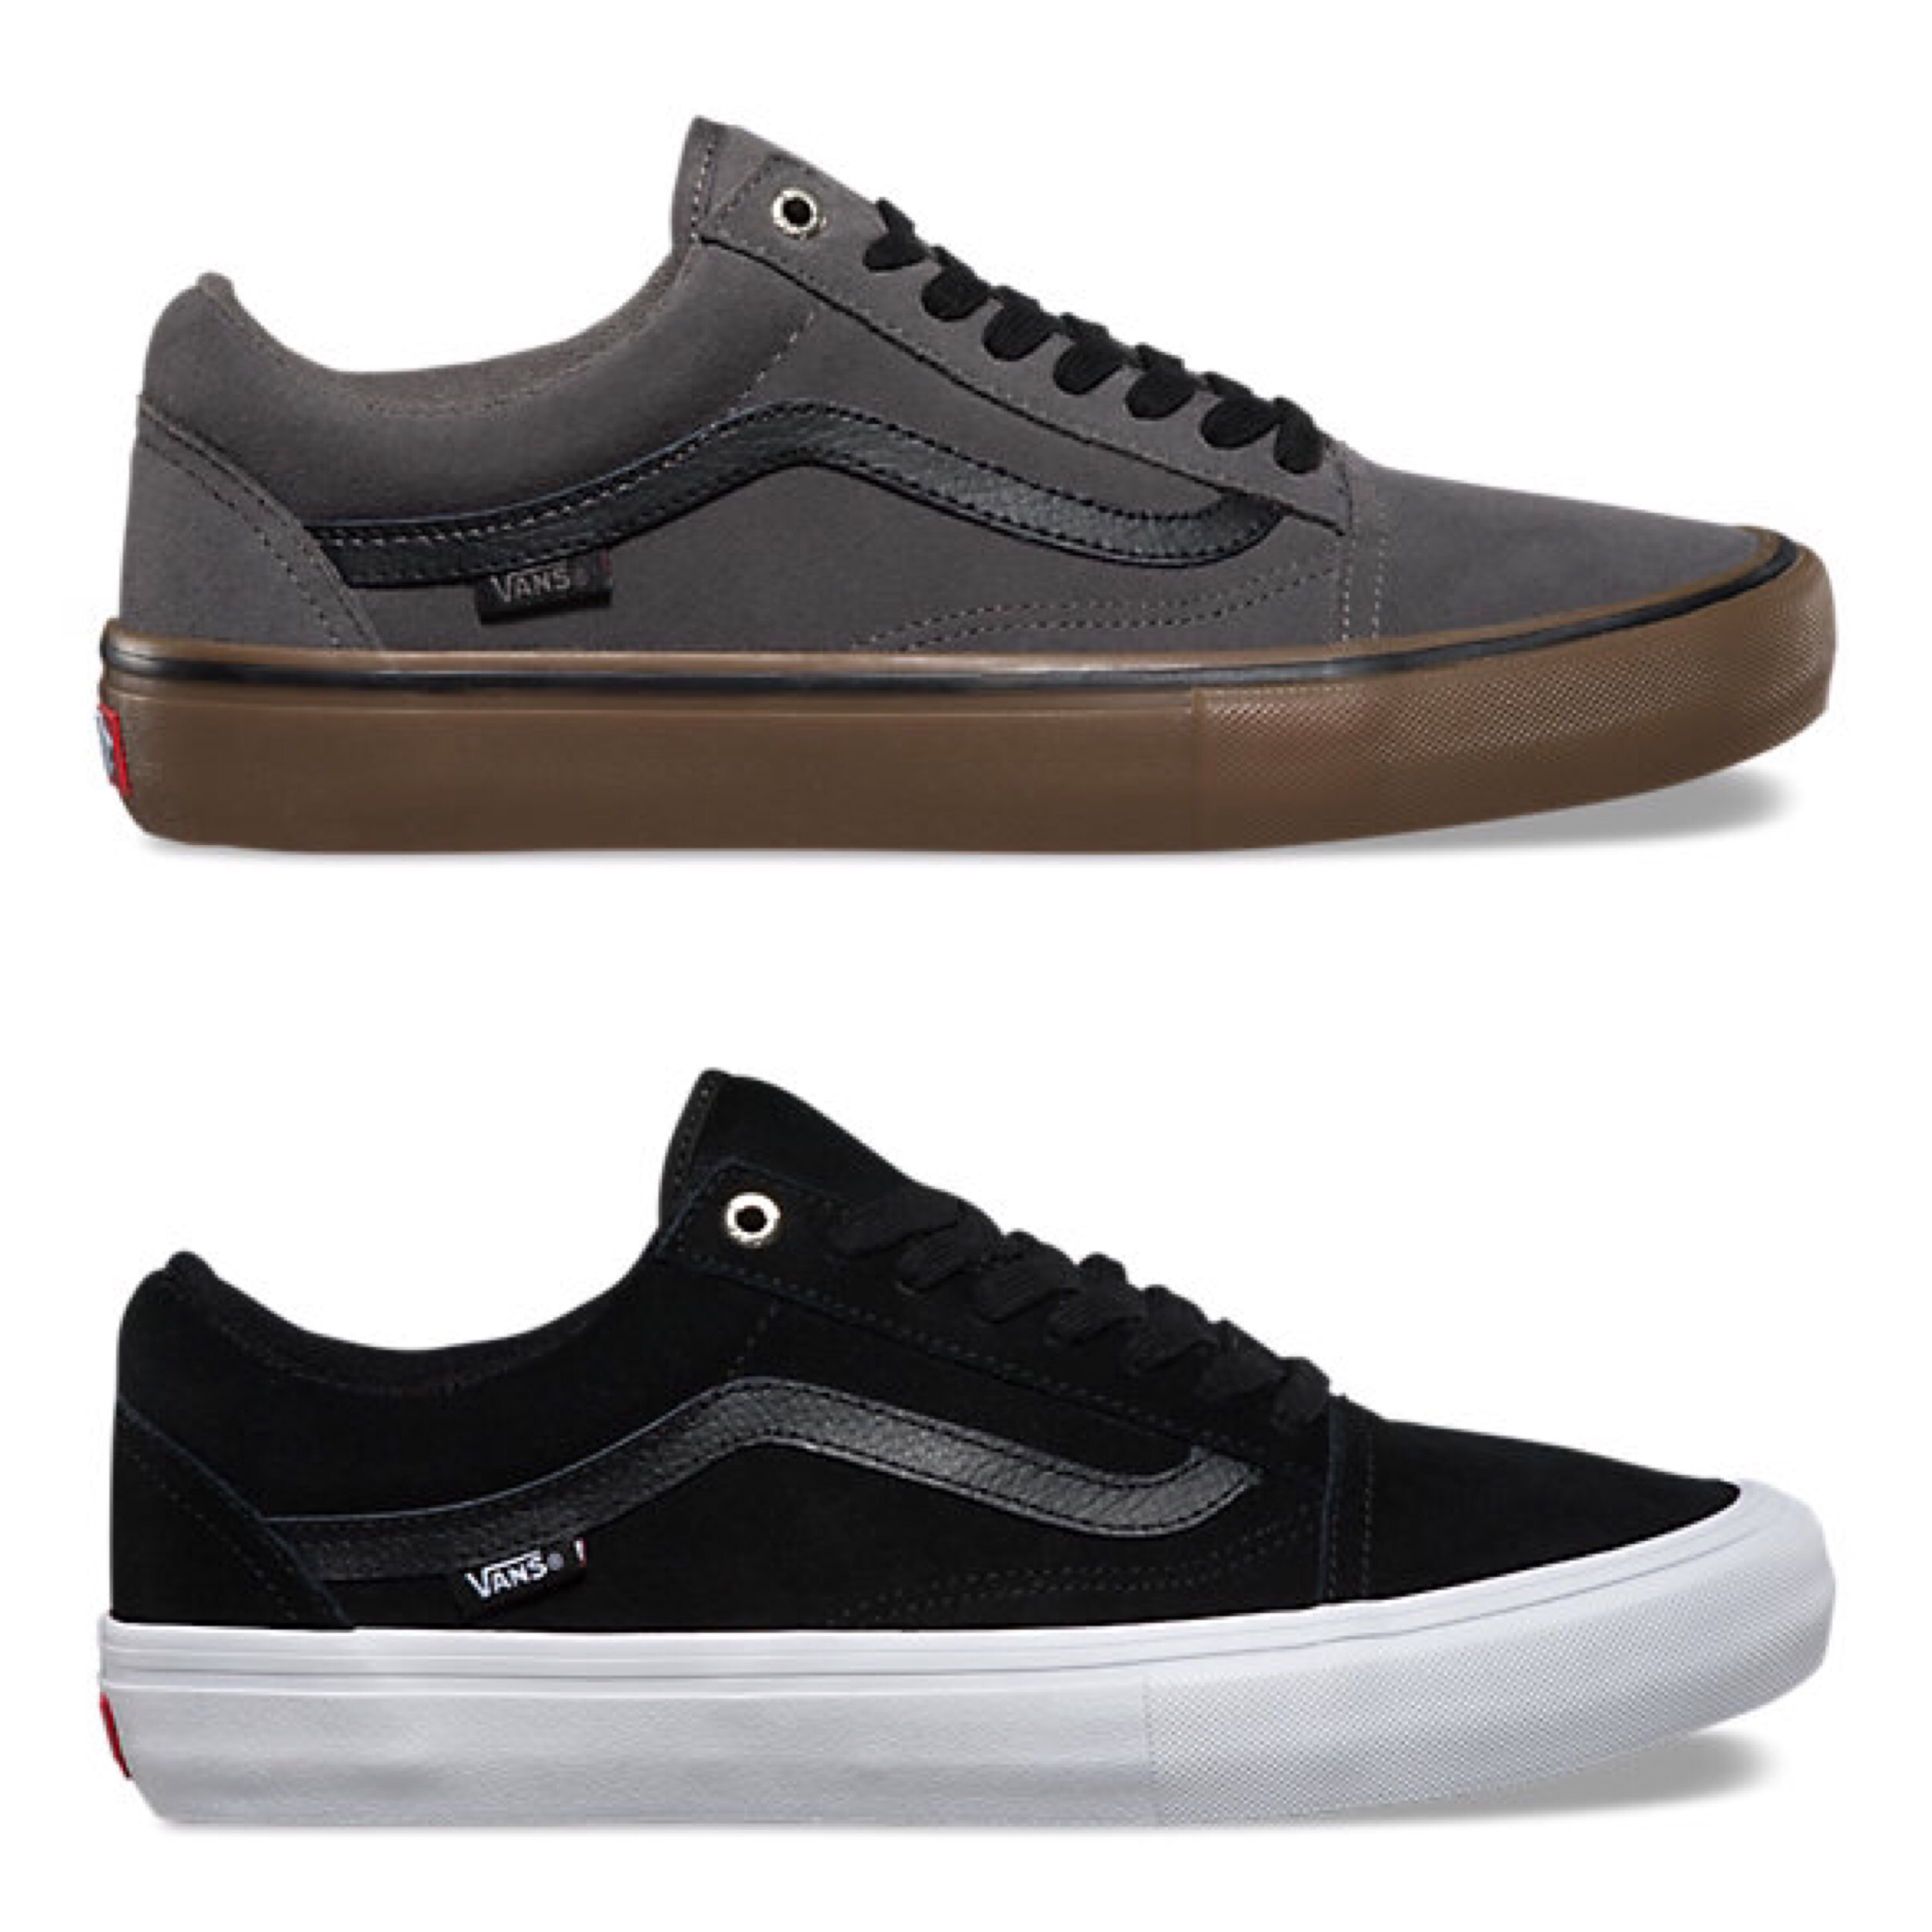 bd4cf0936e94 Two new colors in the Old Skool Pro from Vans!  65  centralboardshop  wausau